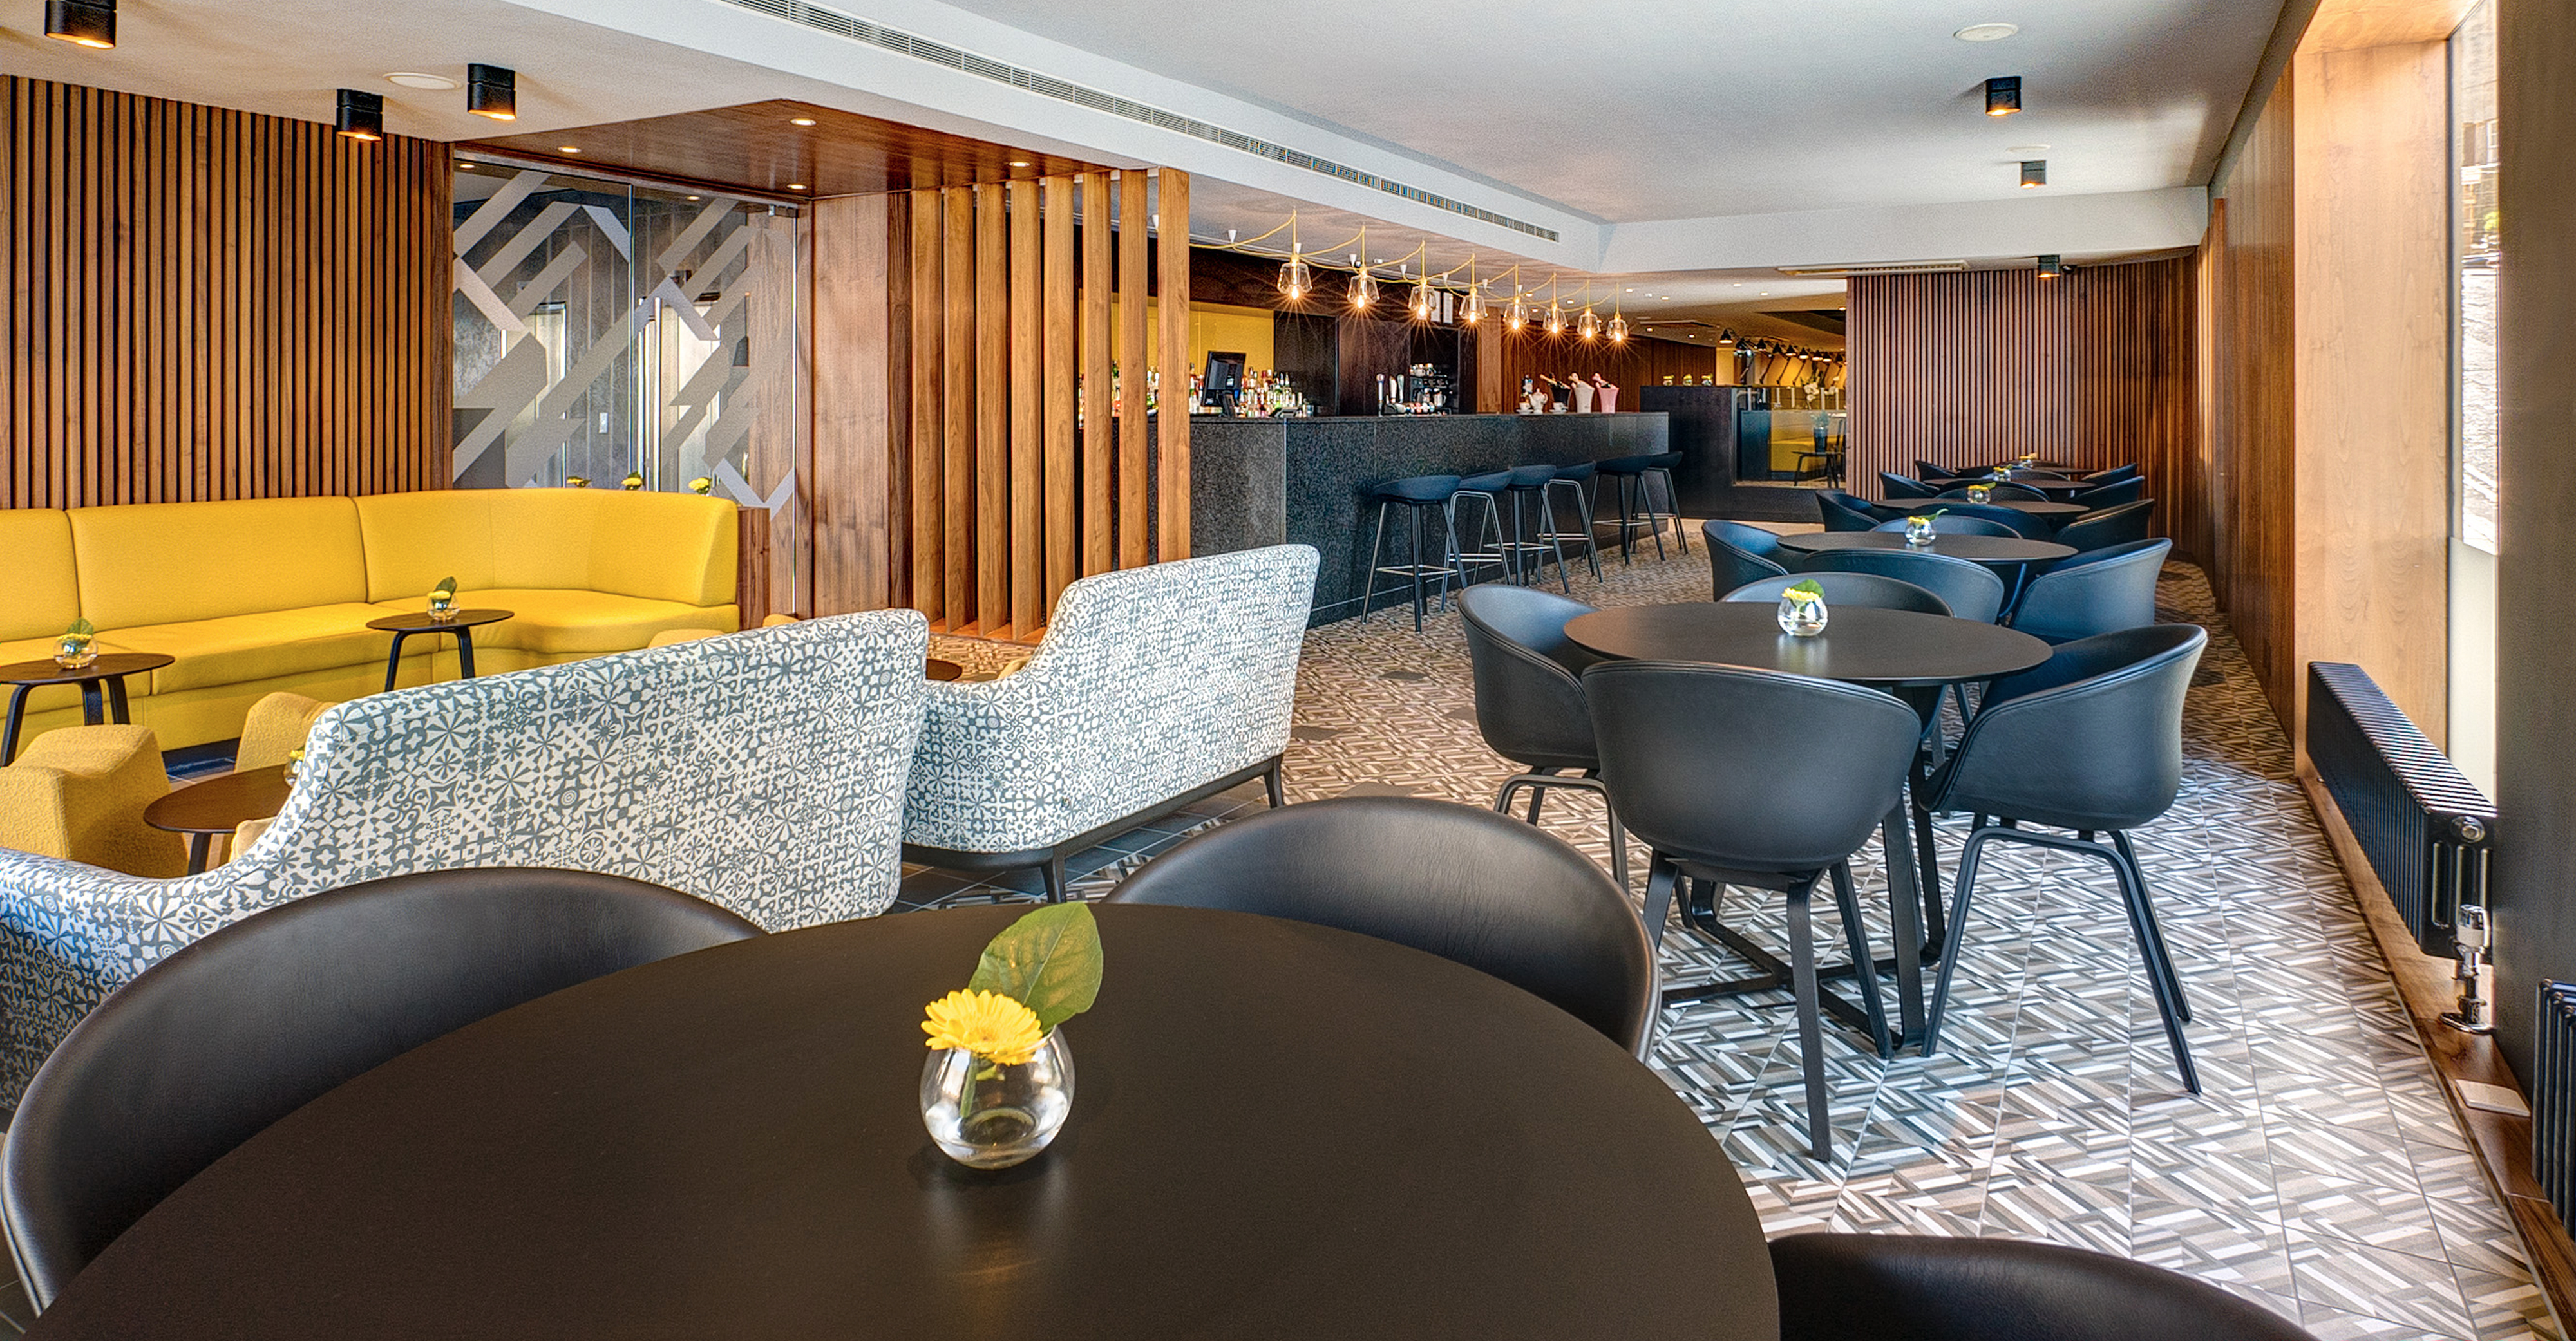 apex-hotel-edinburgh-moleta-munro-lights-chairs-furniture-international